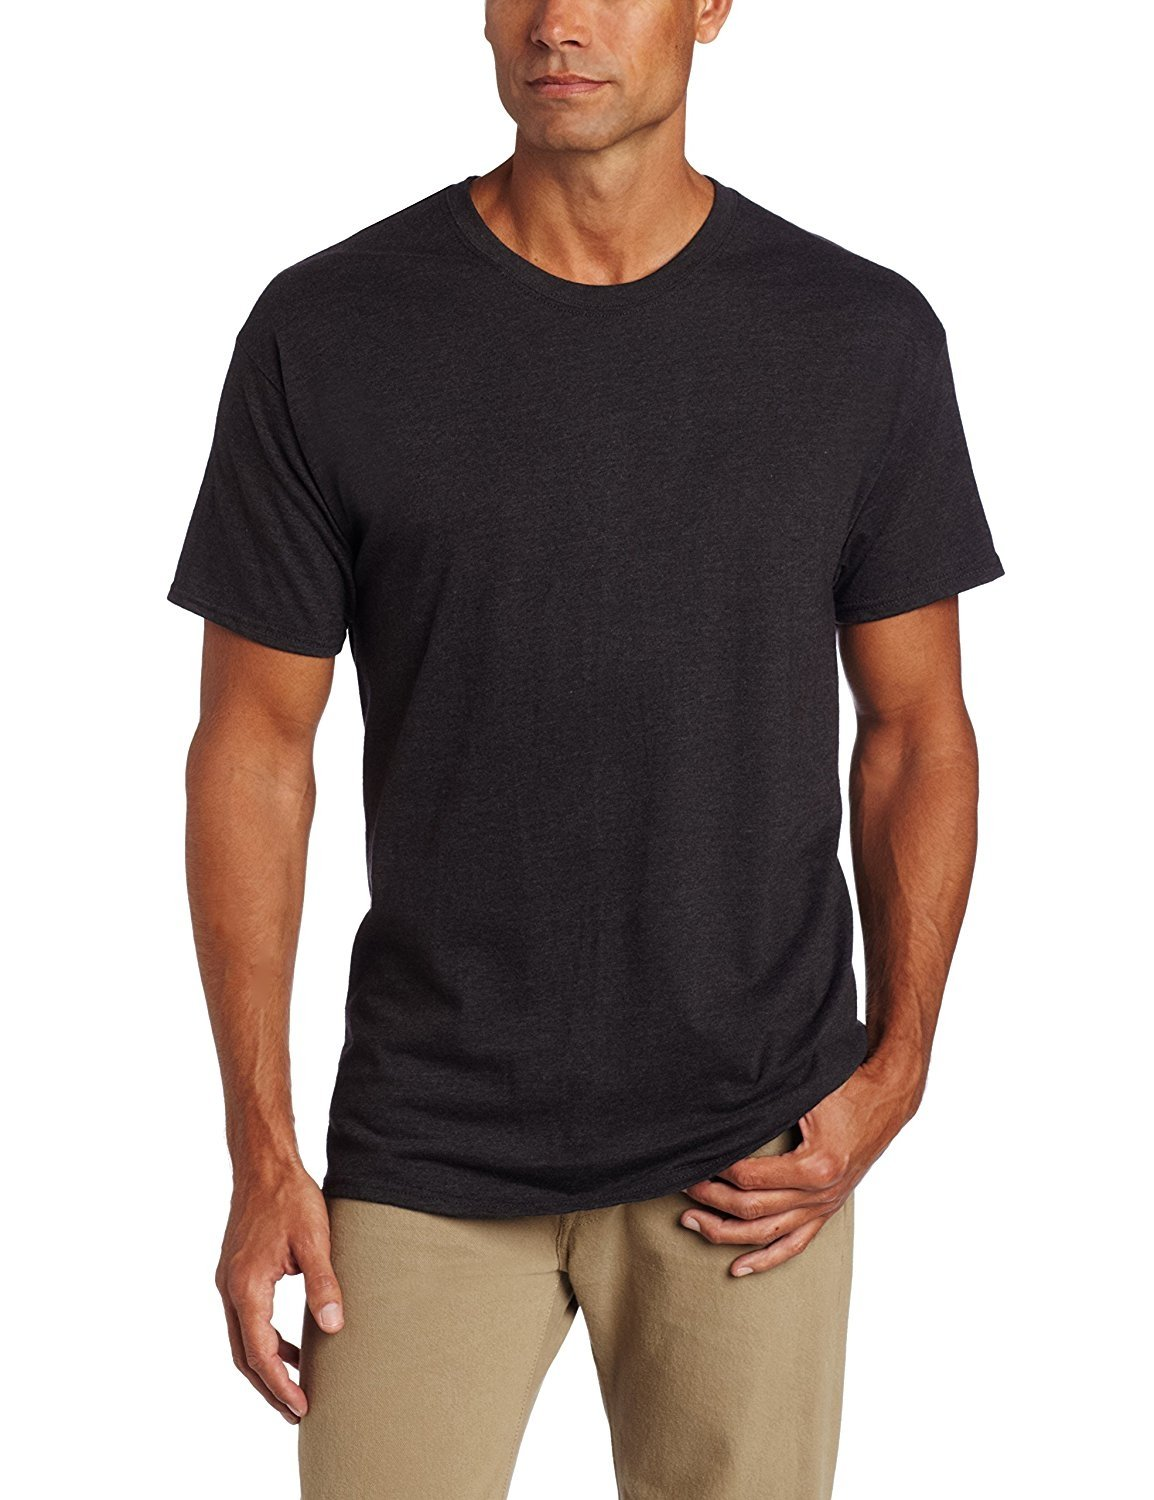 f526e8b6 Hanes Mens Underwear 6990bk Classics X-temp Crew Neck Soft Breathable Small  Deep Charcoal. About this product. Picture 1 of 2; Picture 2 of 2